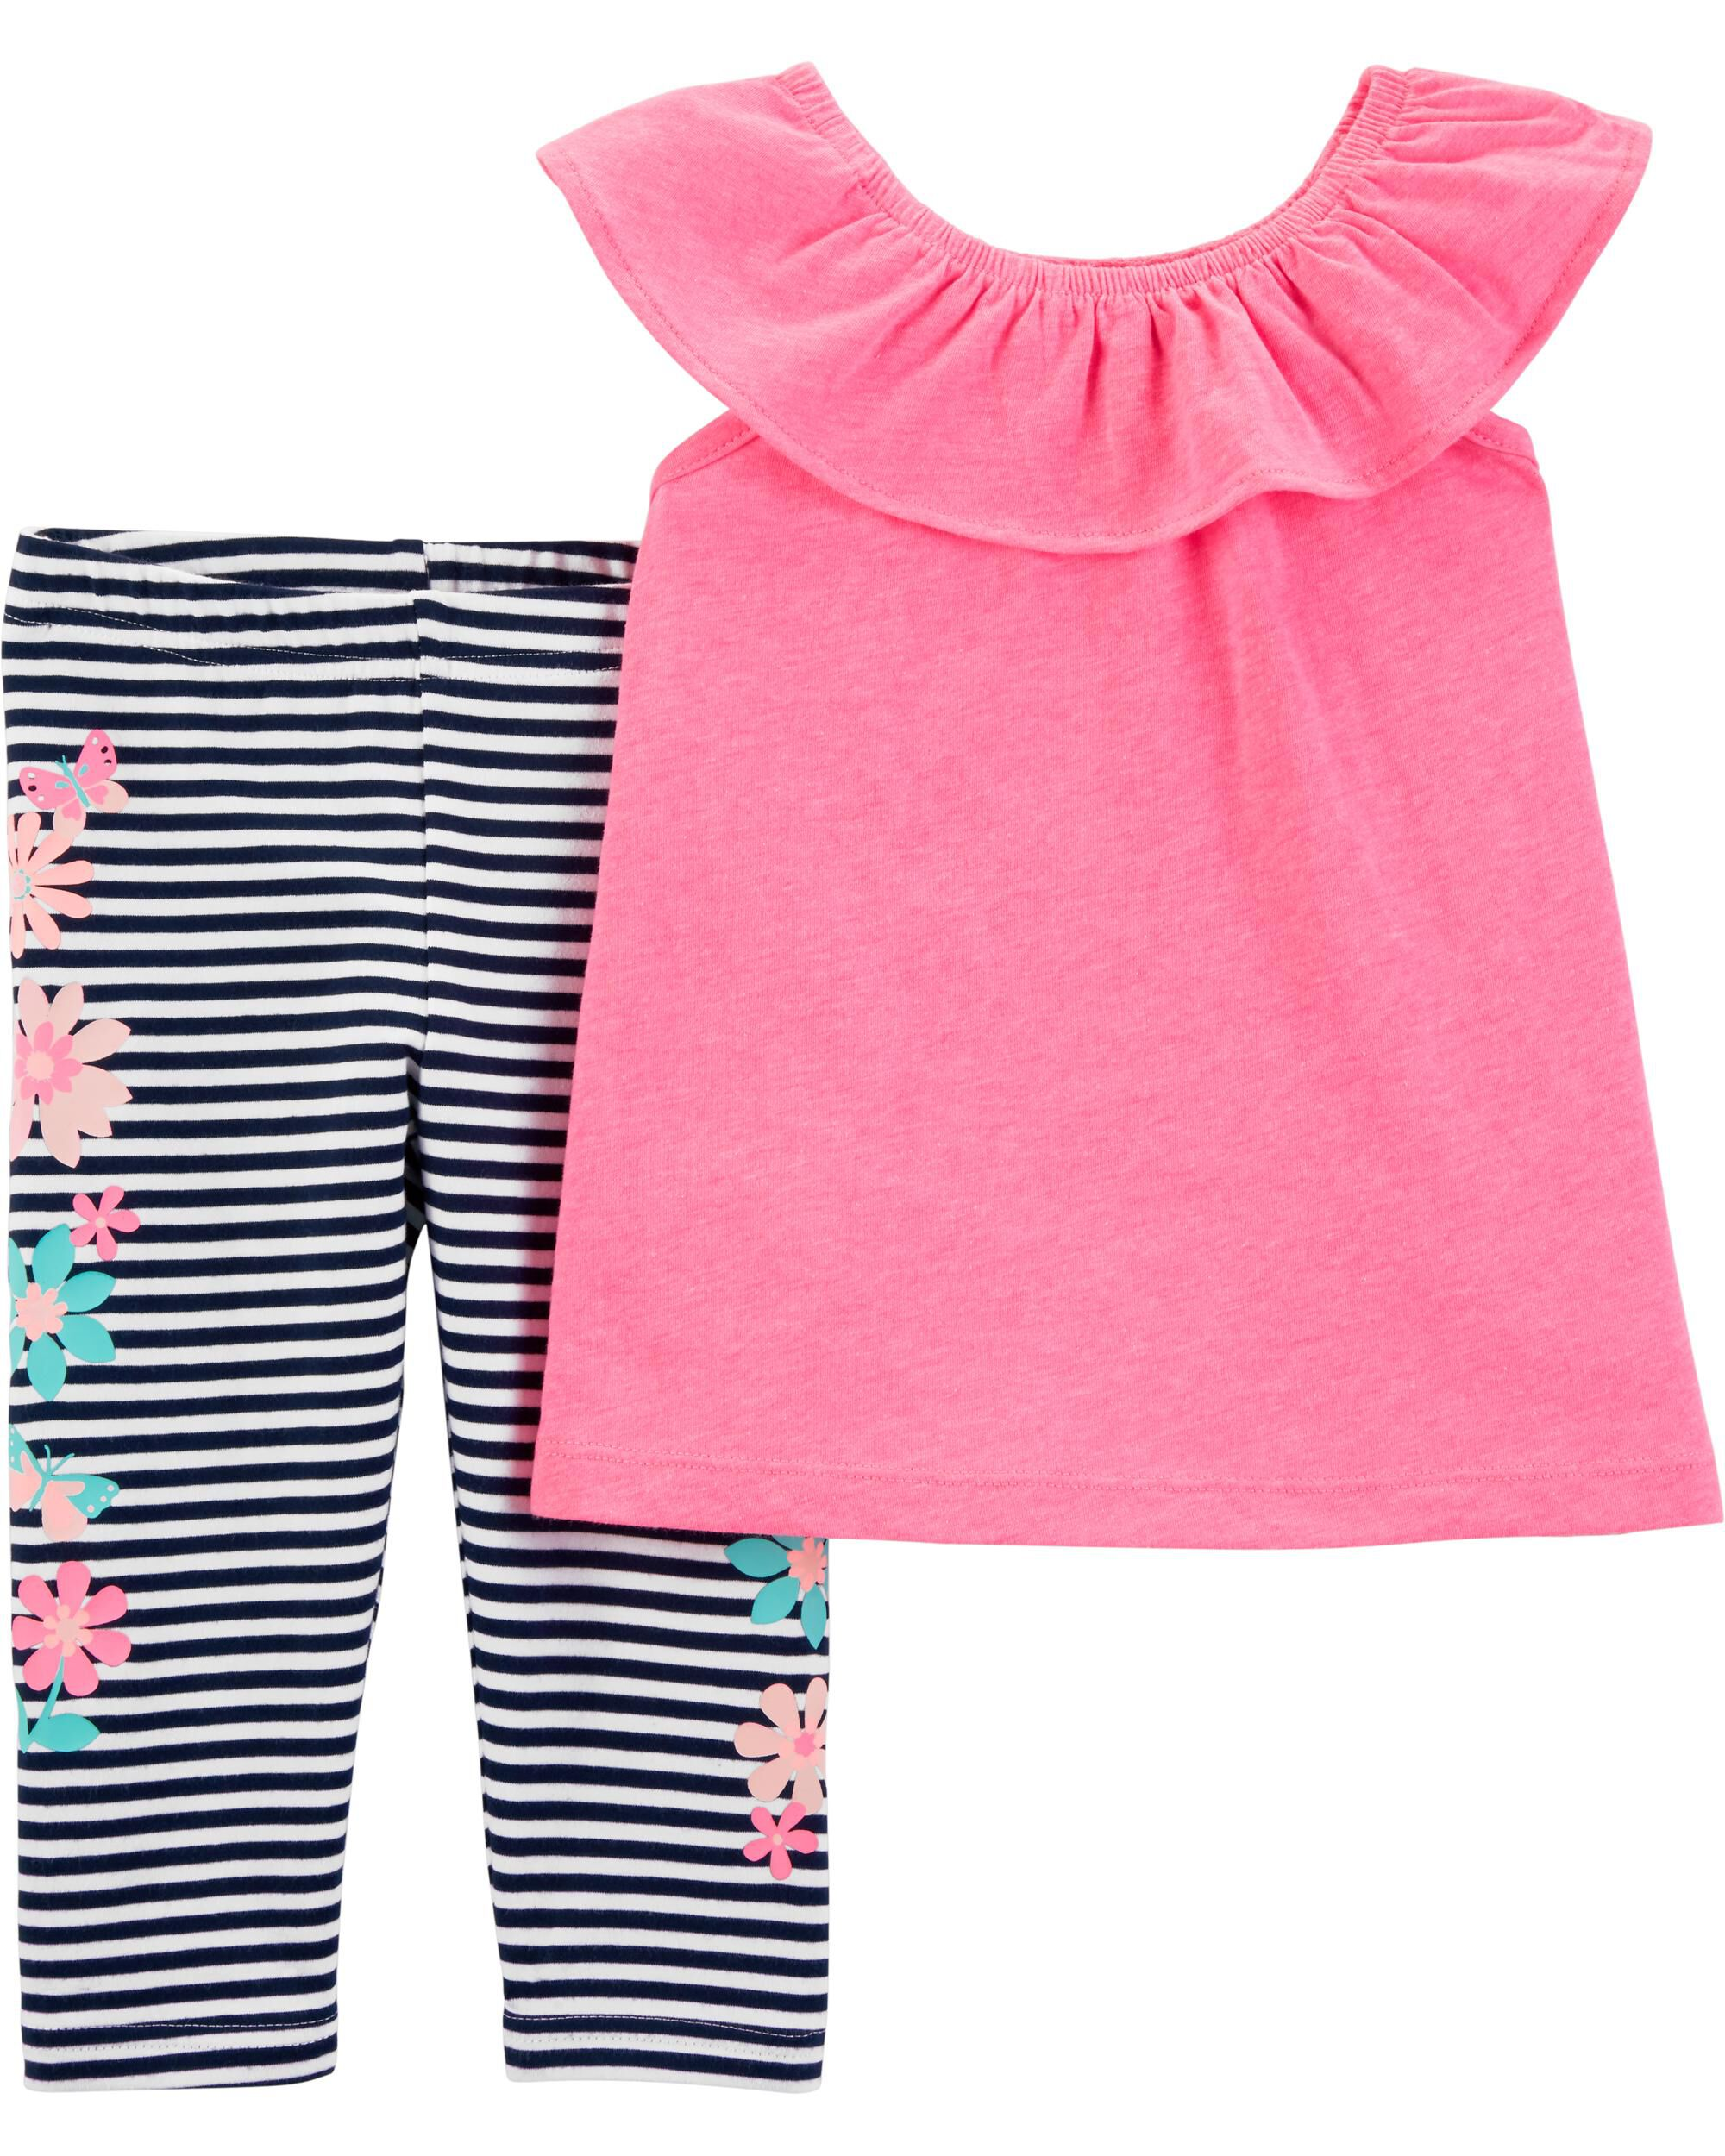 Baby Girls 3-6 Months Top/legging Set Outfits & Sets